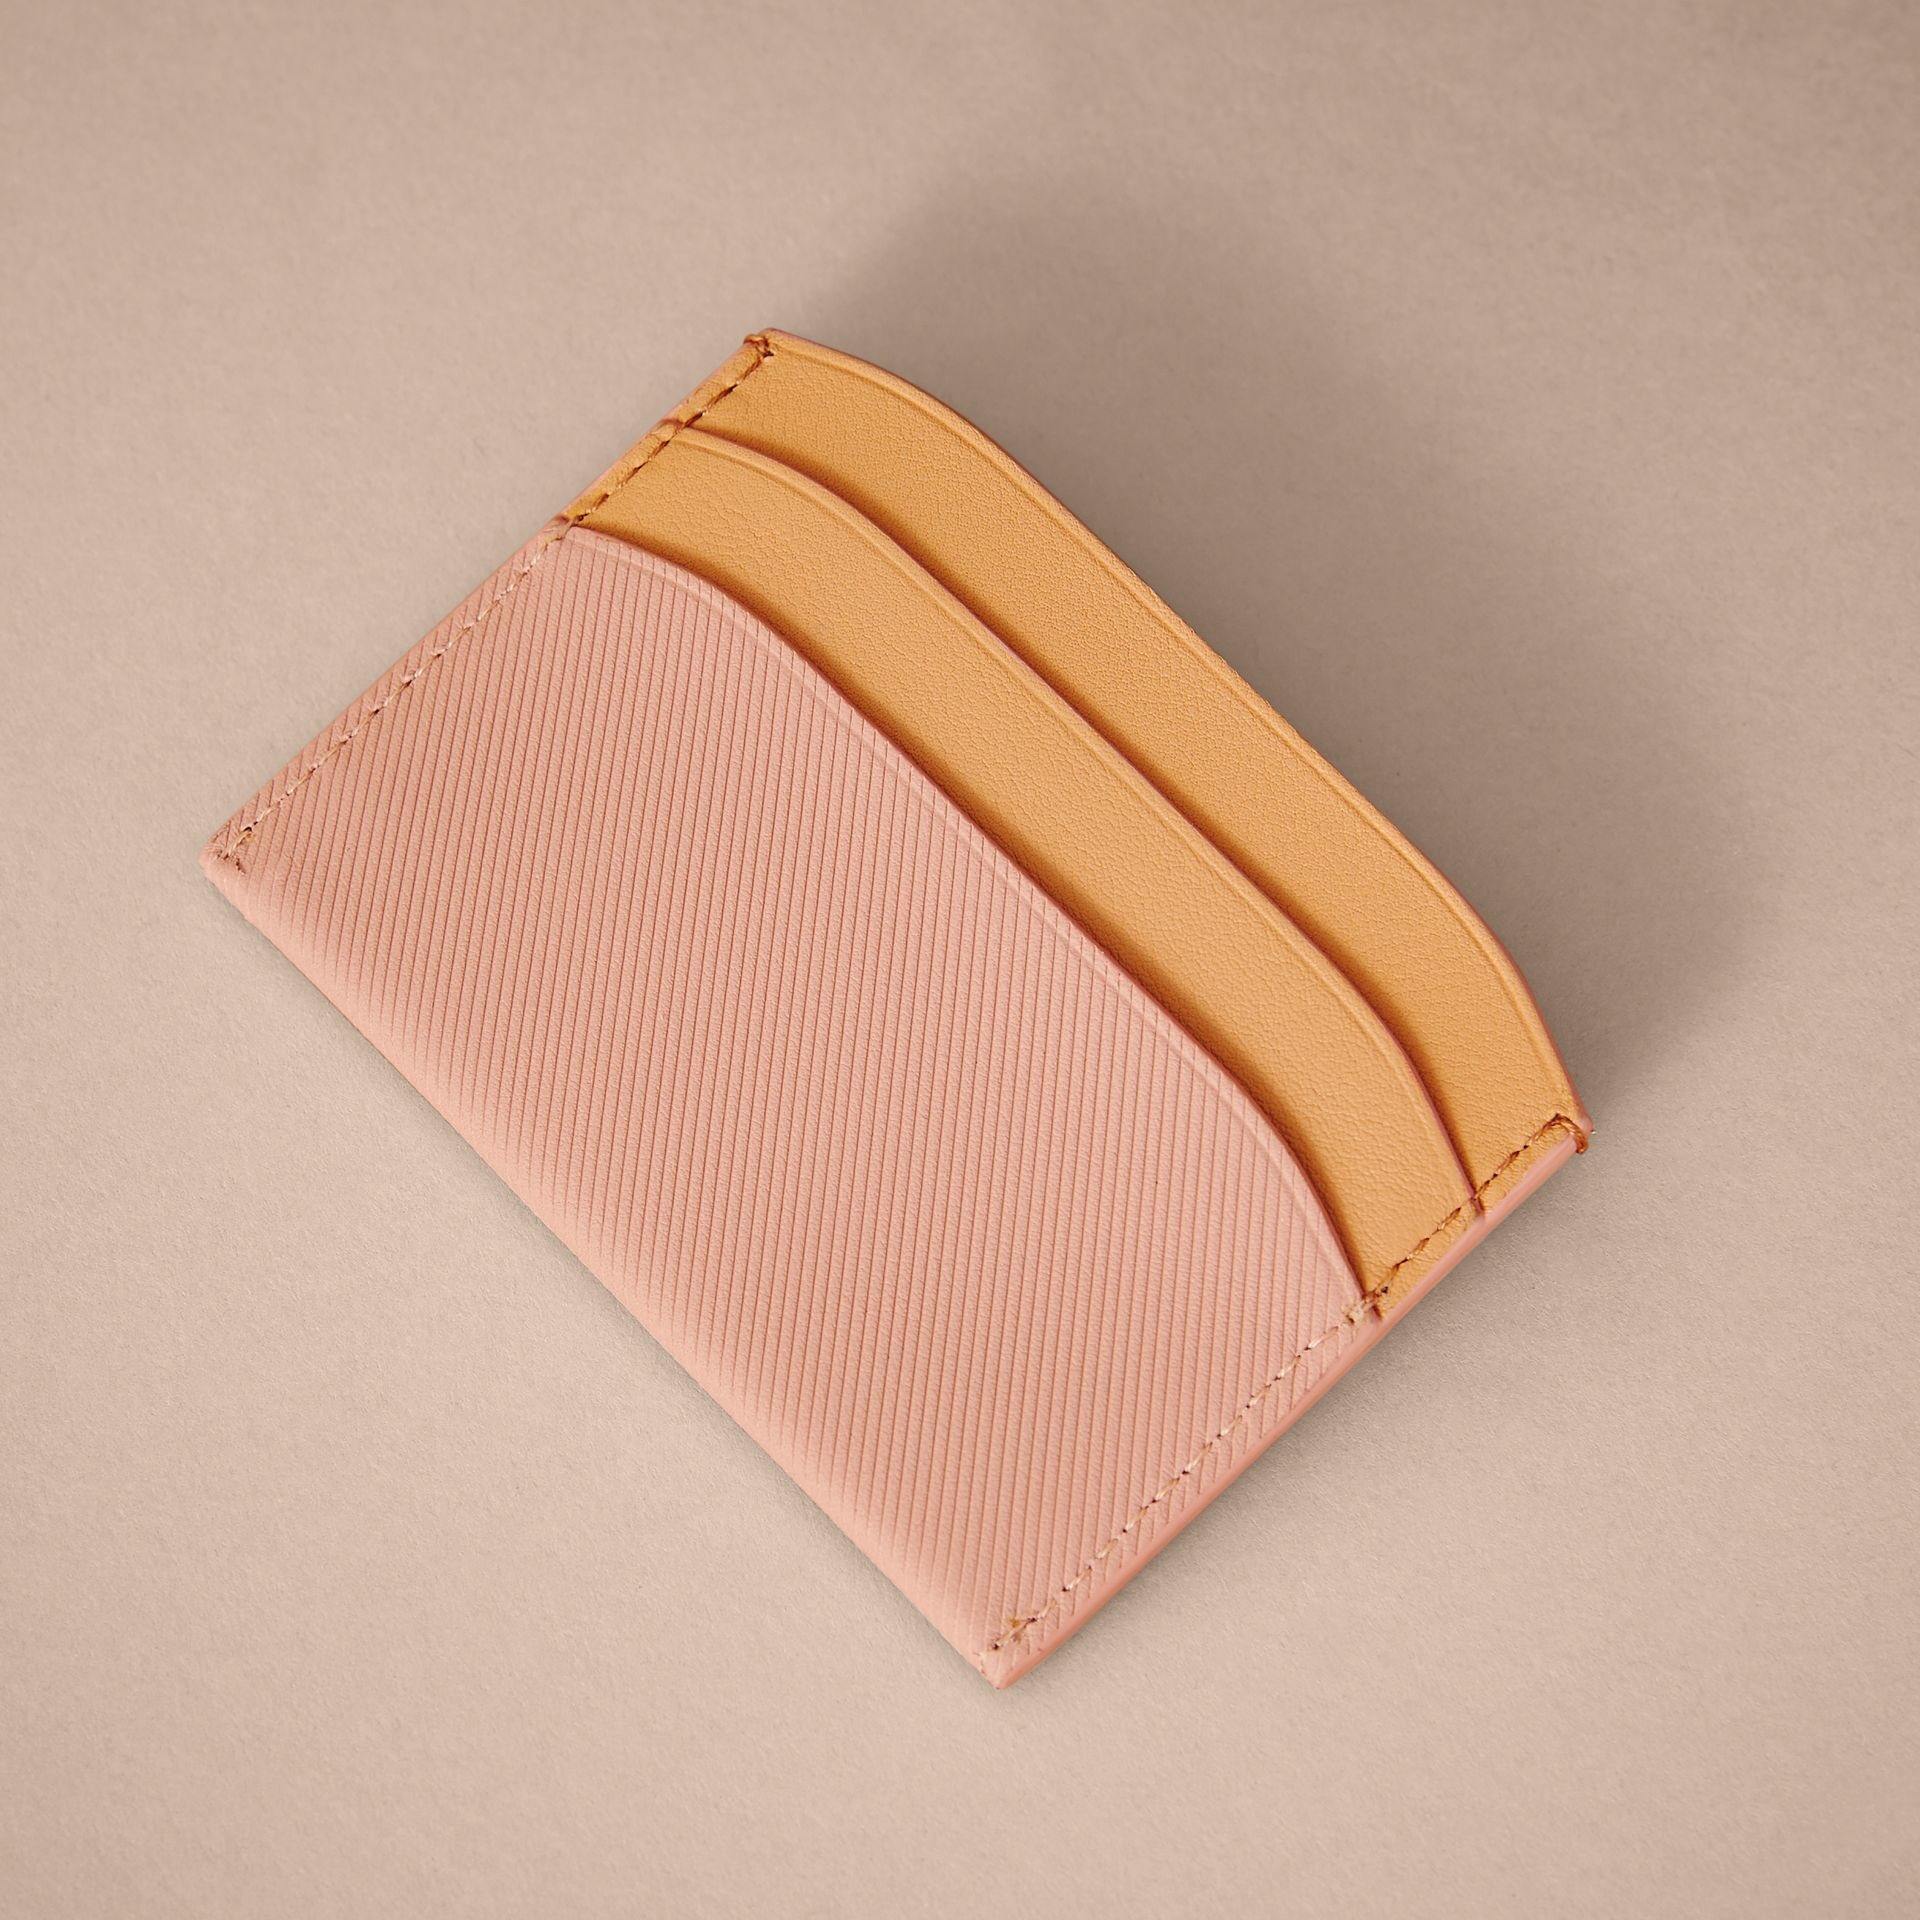 Two-tone Trench Leather Card Case in Ash Rose/pl Clemn - Women | Burberry - gallery image 3